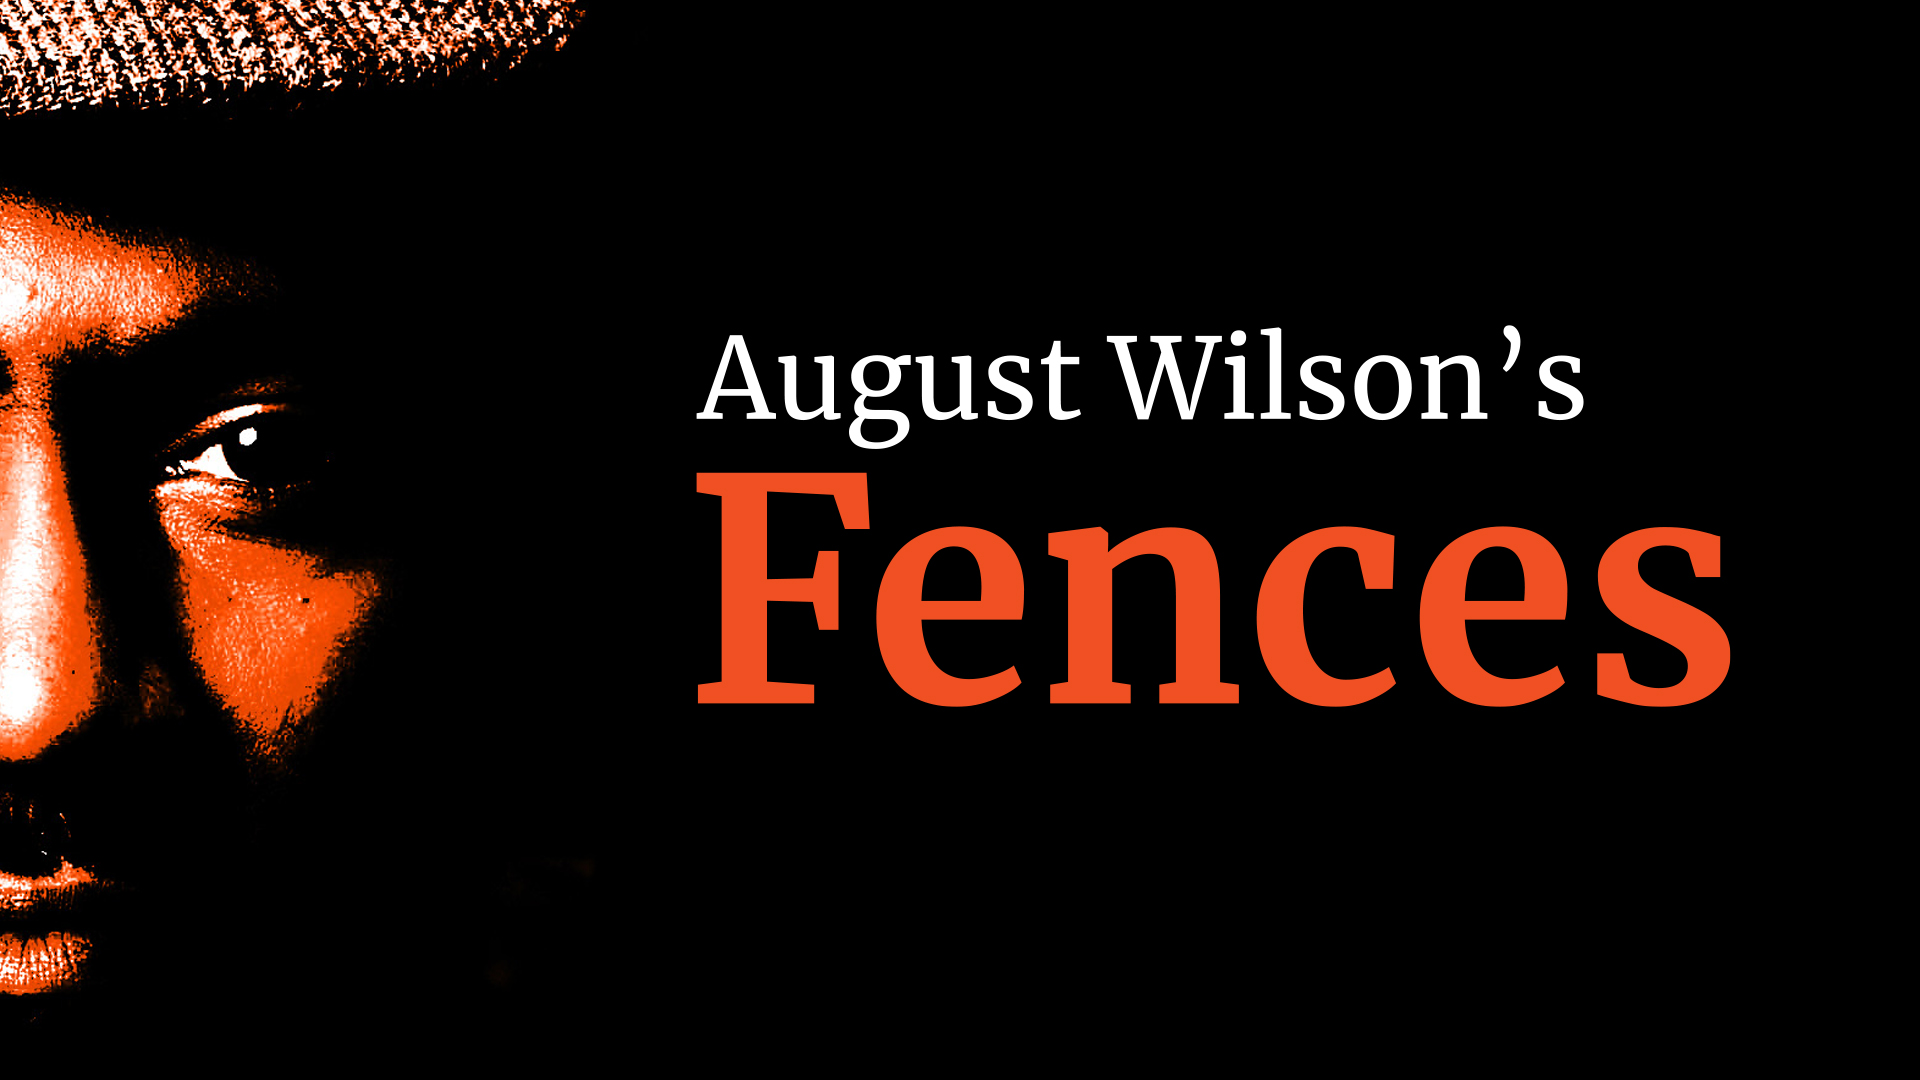 a man's face in shadows with the text: August Wilson's Fences